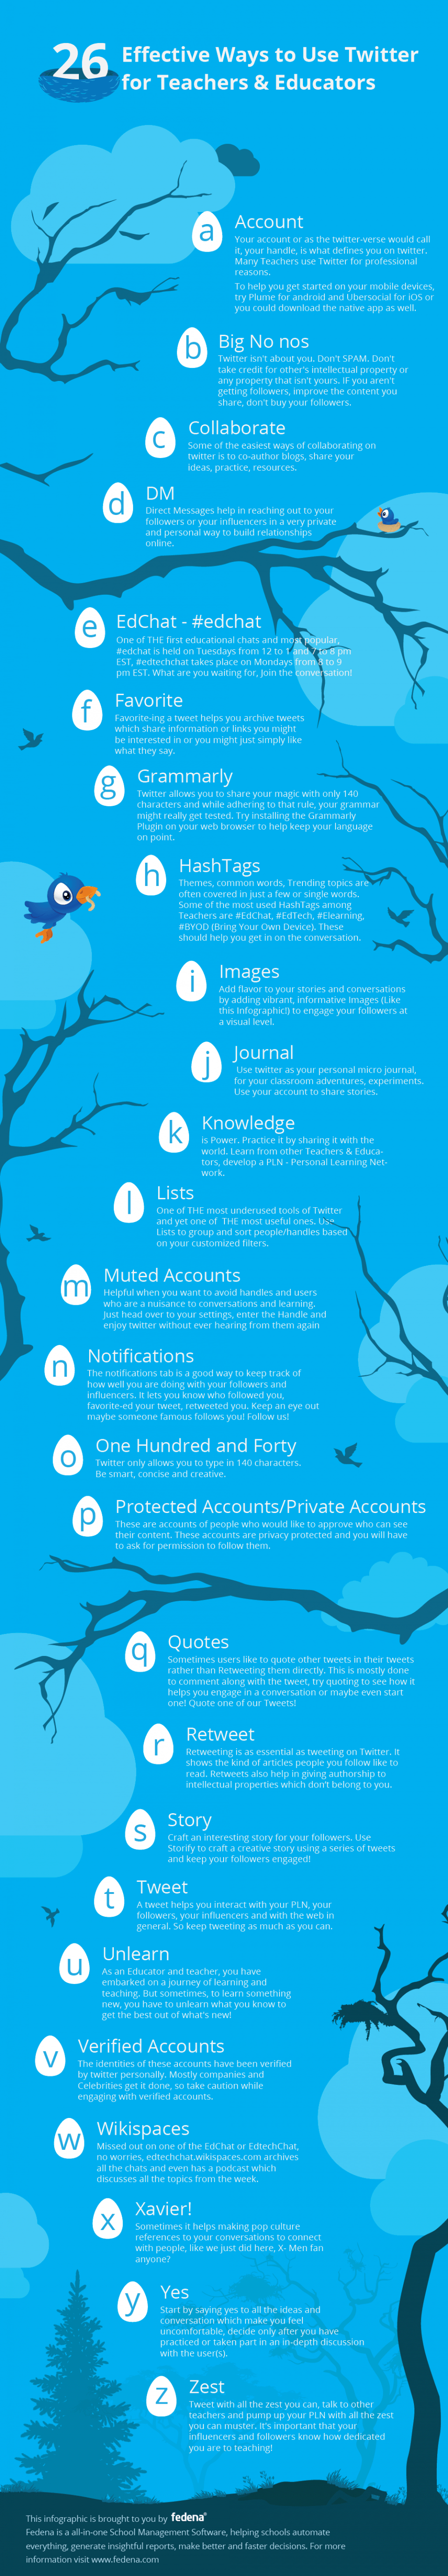 26 Effective Ways to use Twitter for Teachers and Educators Infographic